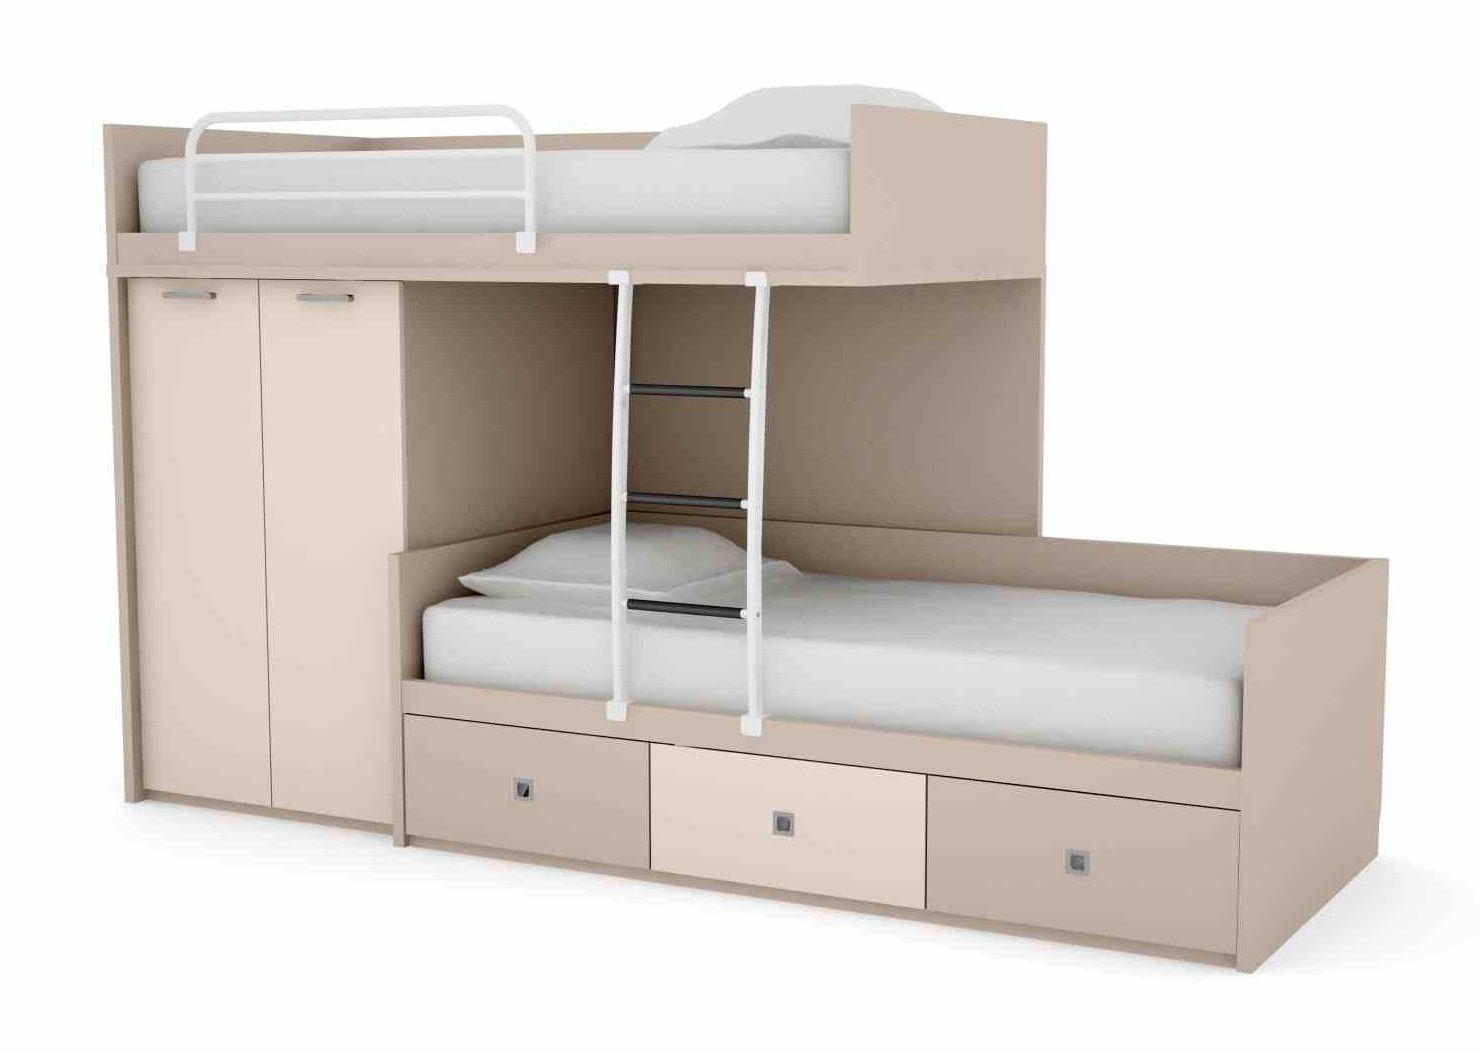 99+ Compact Bunk Beds   Interior Bedroom Design Furniture Check More At  Http:/